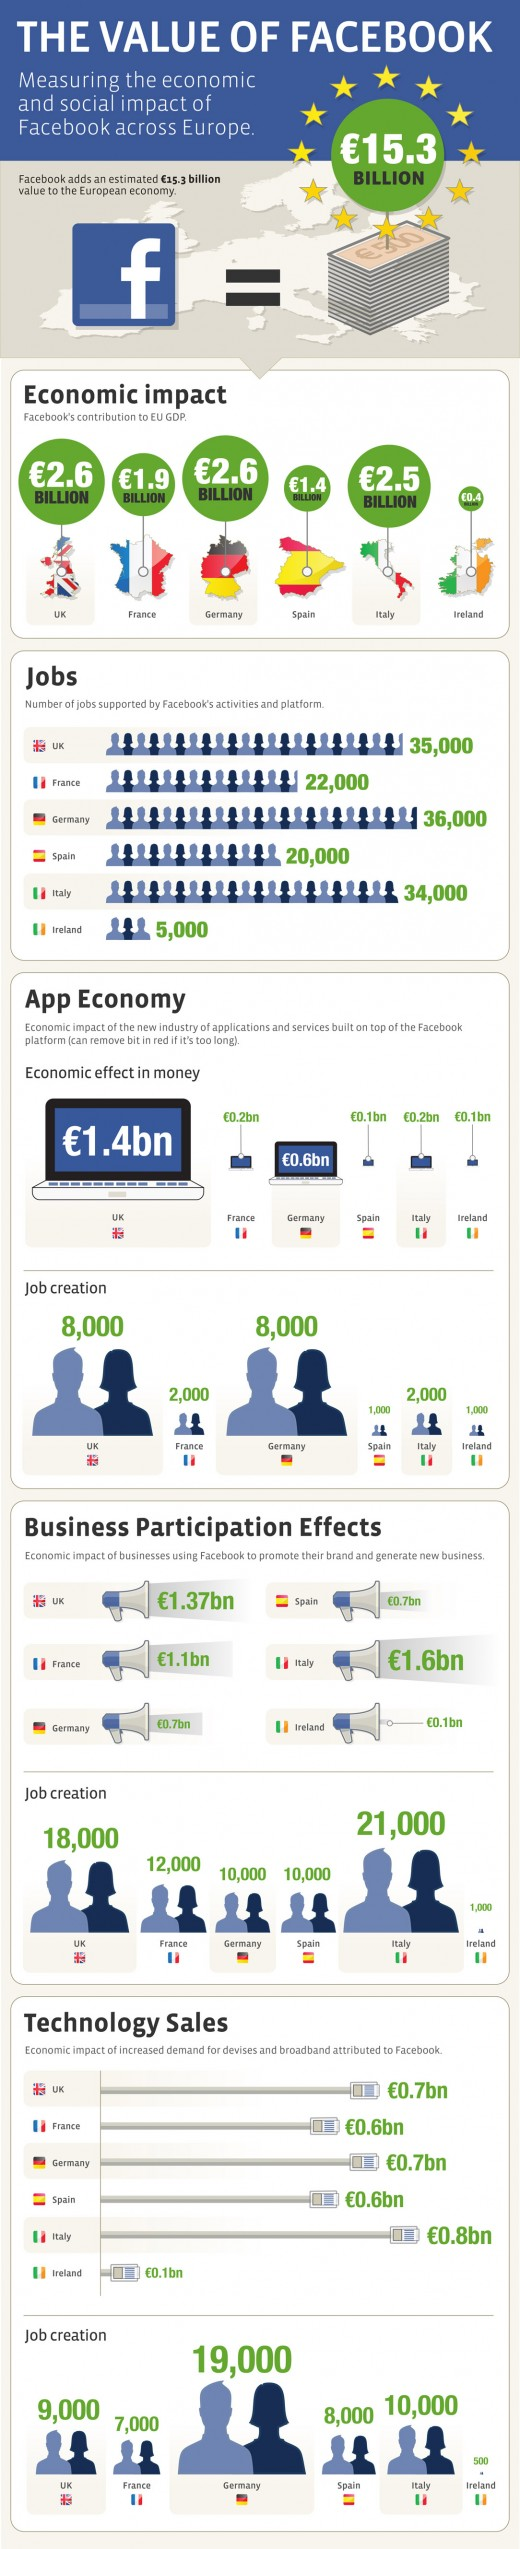 FacebookInfographic 520x2549 Facebook says its worth £2bn to the UK economy, as it announces free ads for SMEs